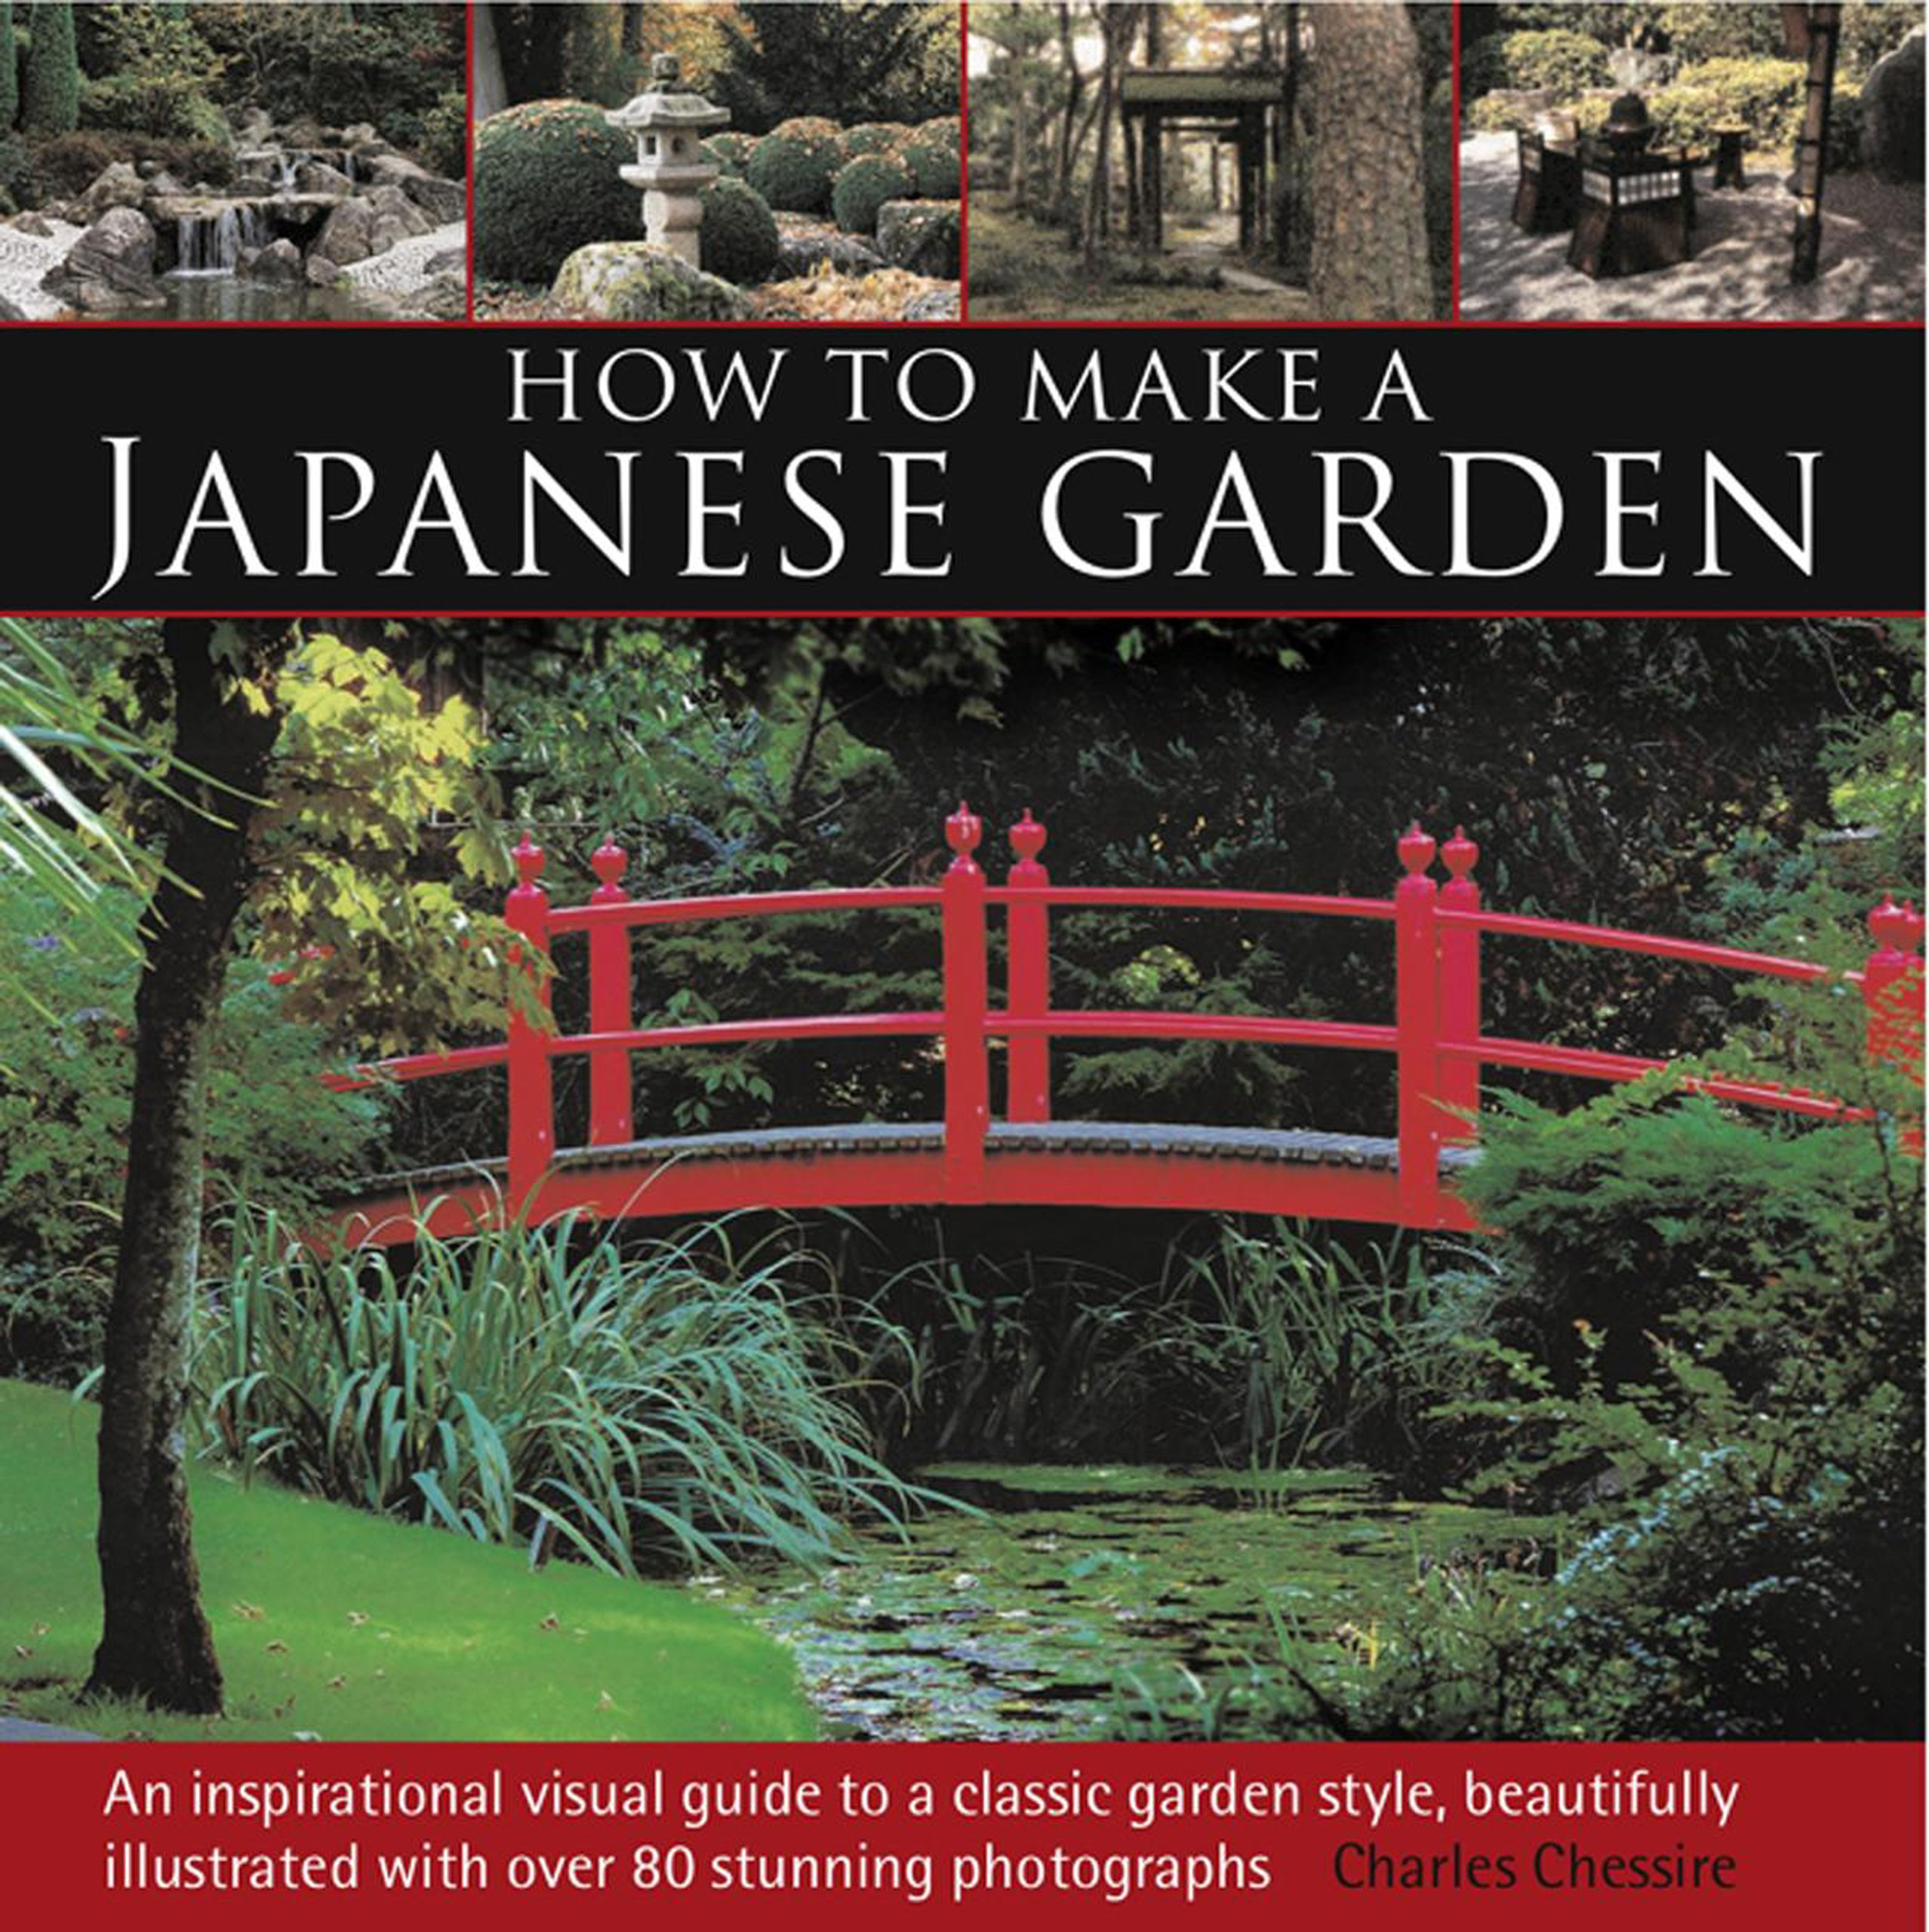 Incroyable How To Make A Japanese Garden: An Inspirational Visual Guide To A Classic  Garden Style, Beautifully Illustrated With Over 80 Stunning Photographs:  Charles ...